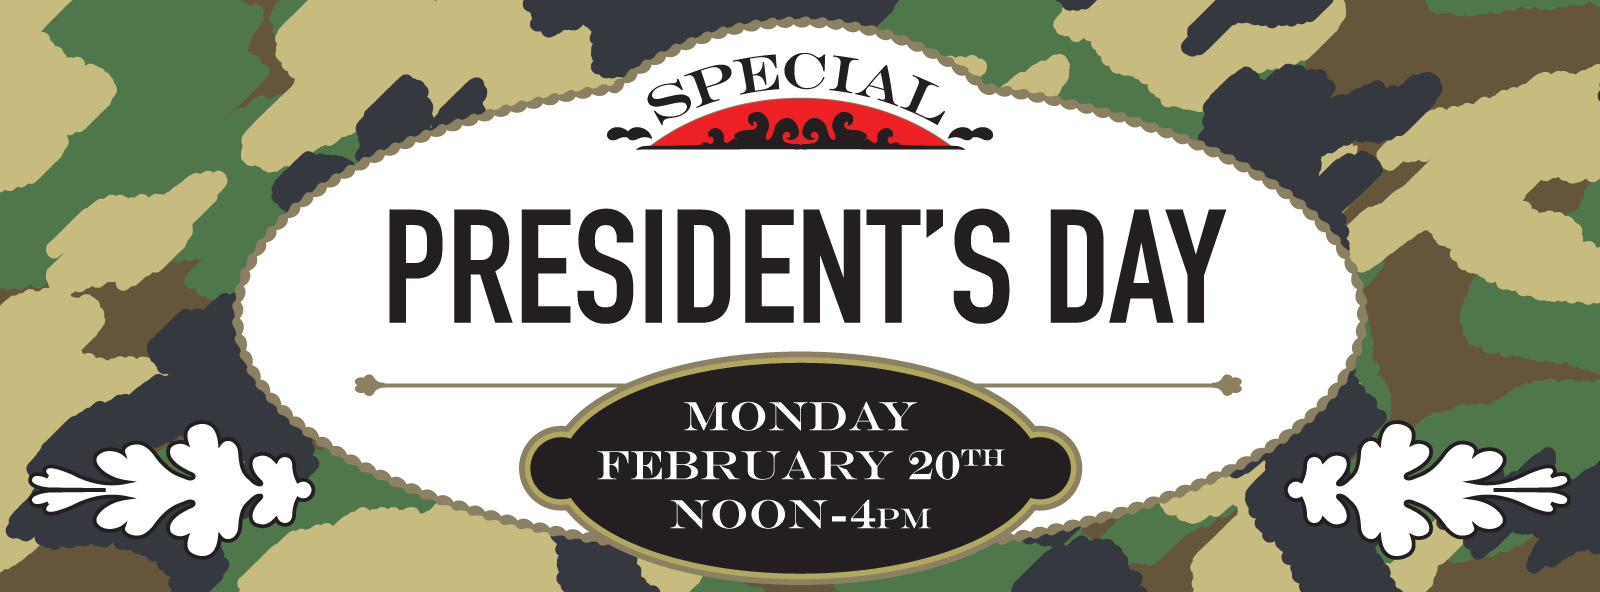 presidents day paintball mn